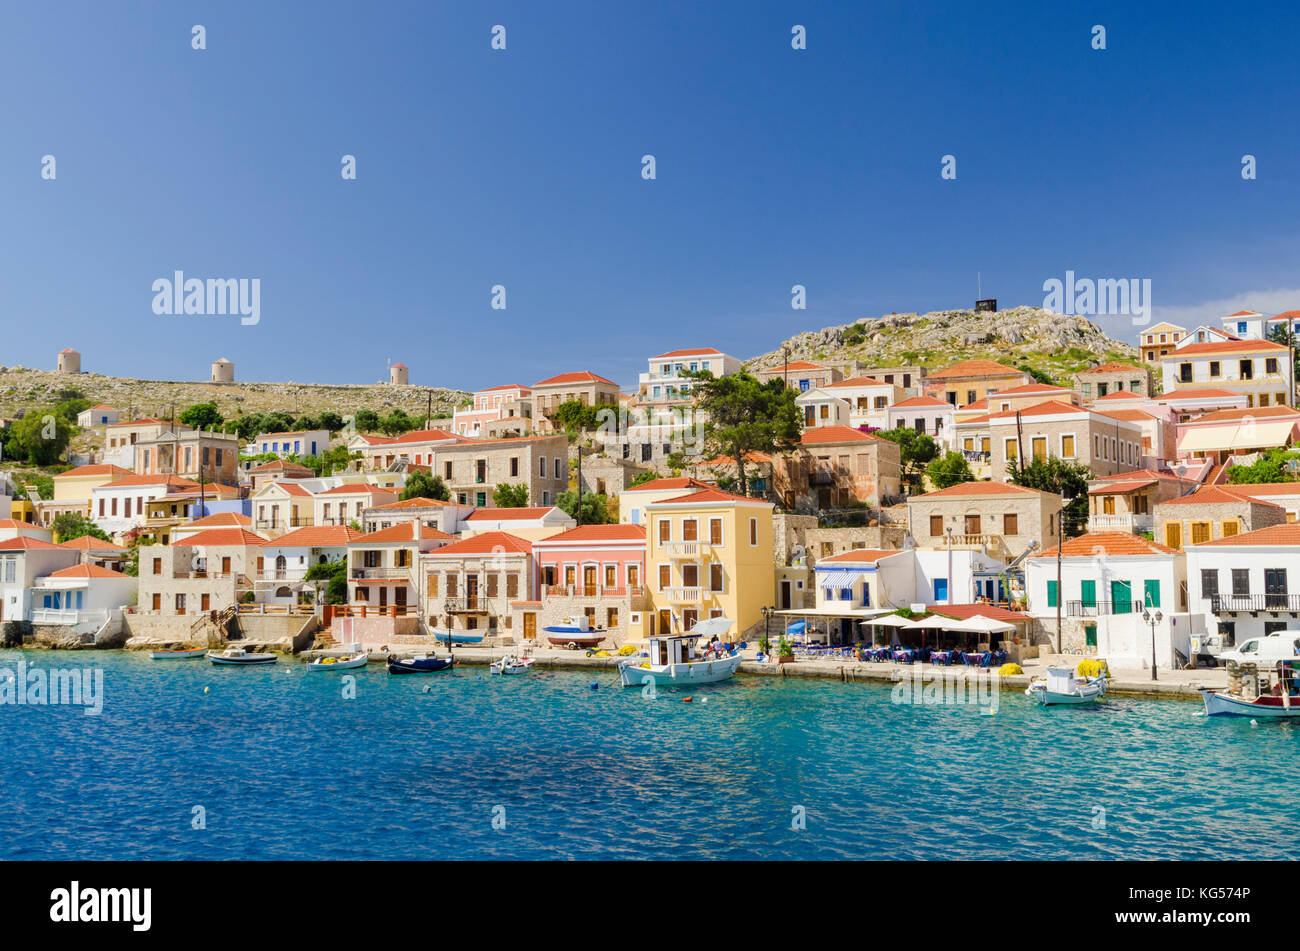 Pretty waterfront views of the port town of Emborios, Halki Island, Dodecanese, Greece - Stock Image